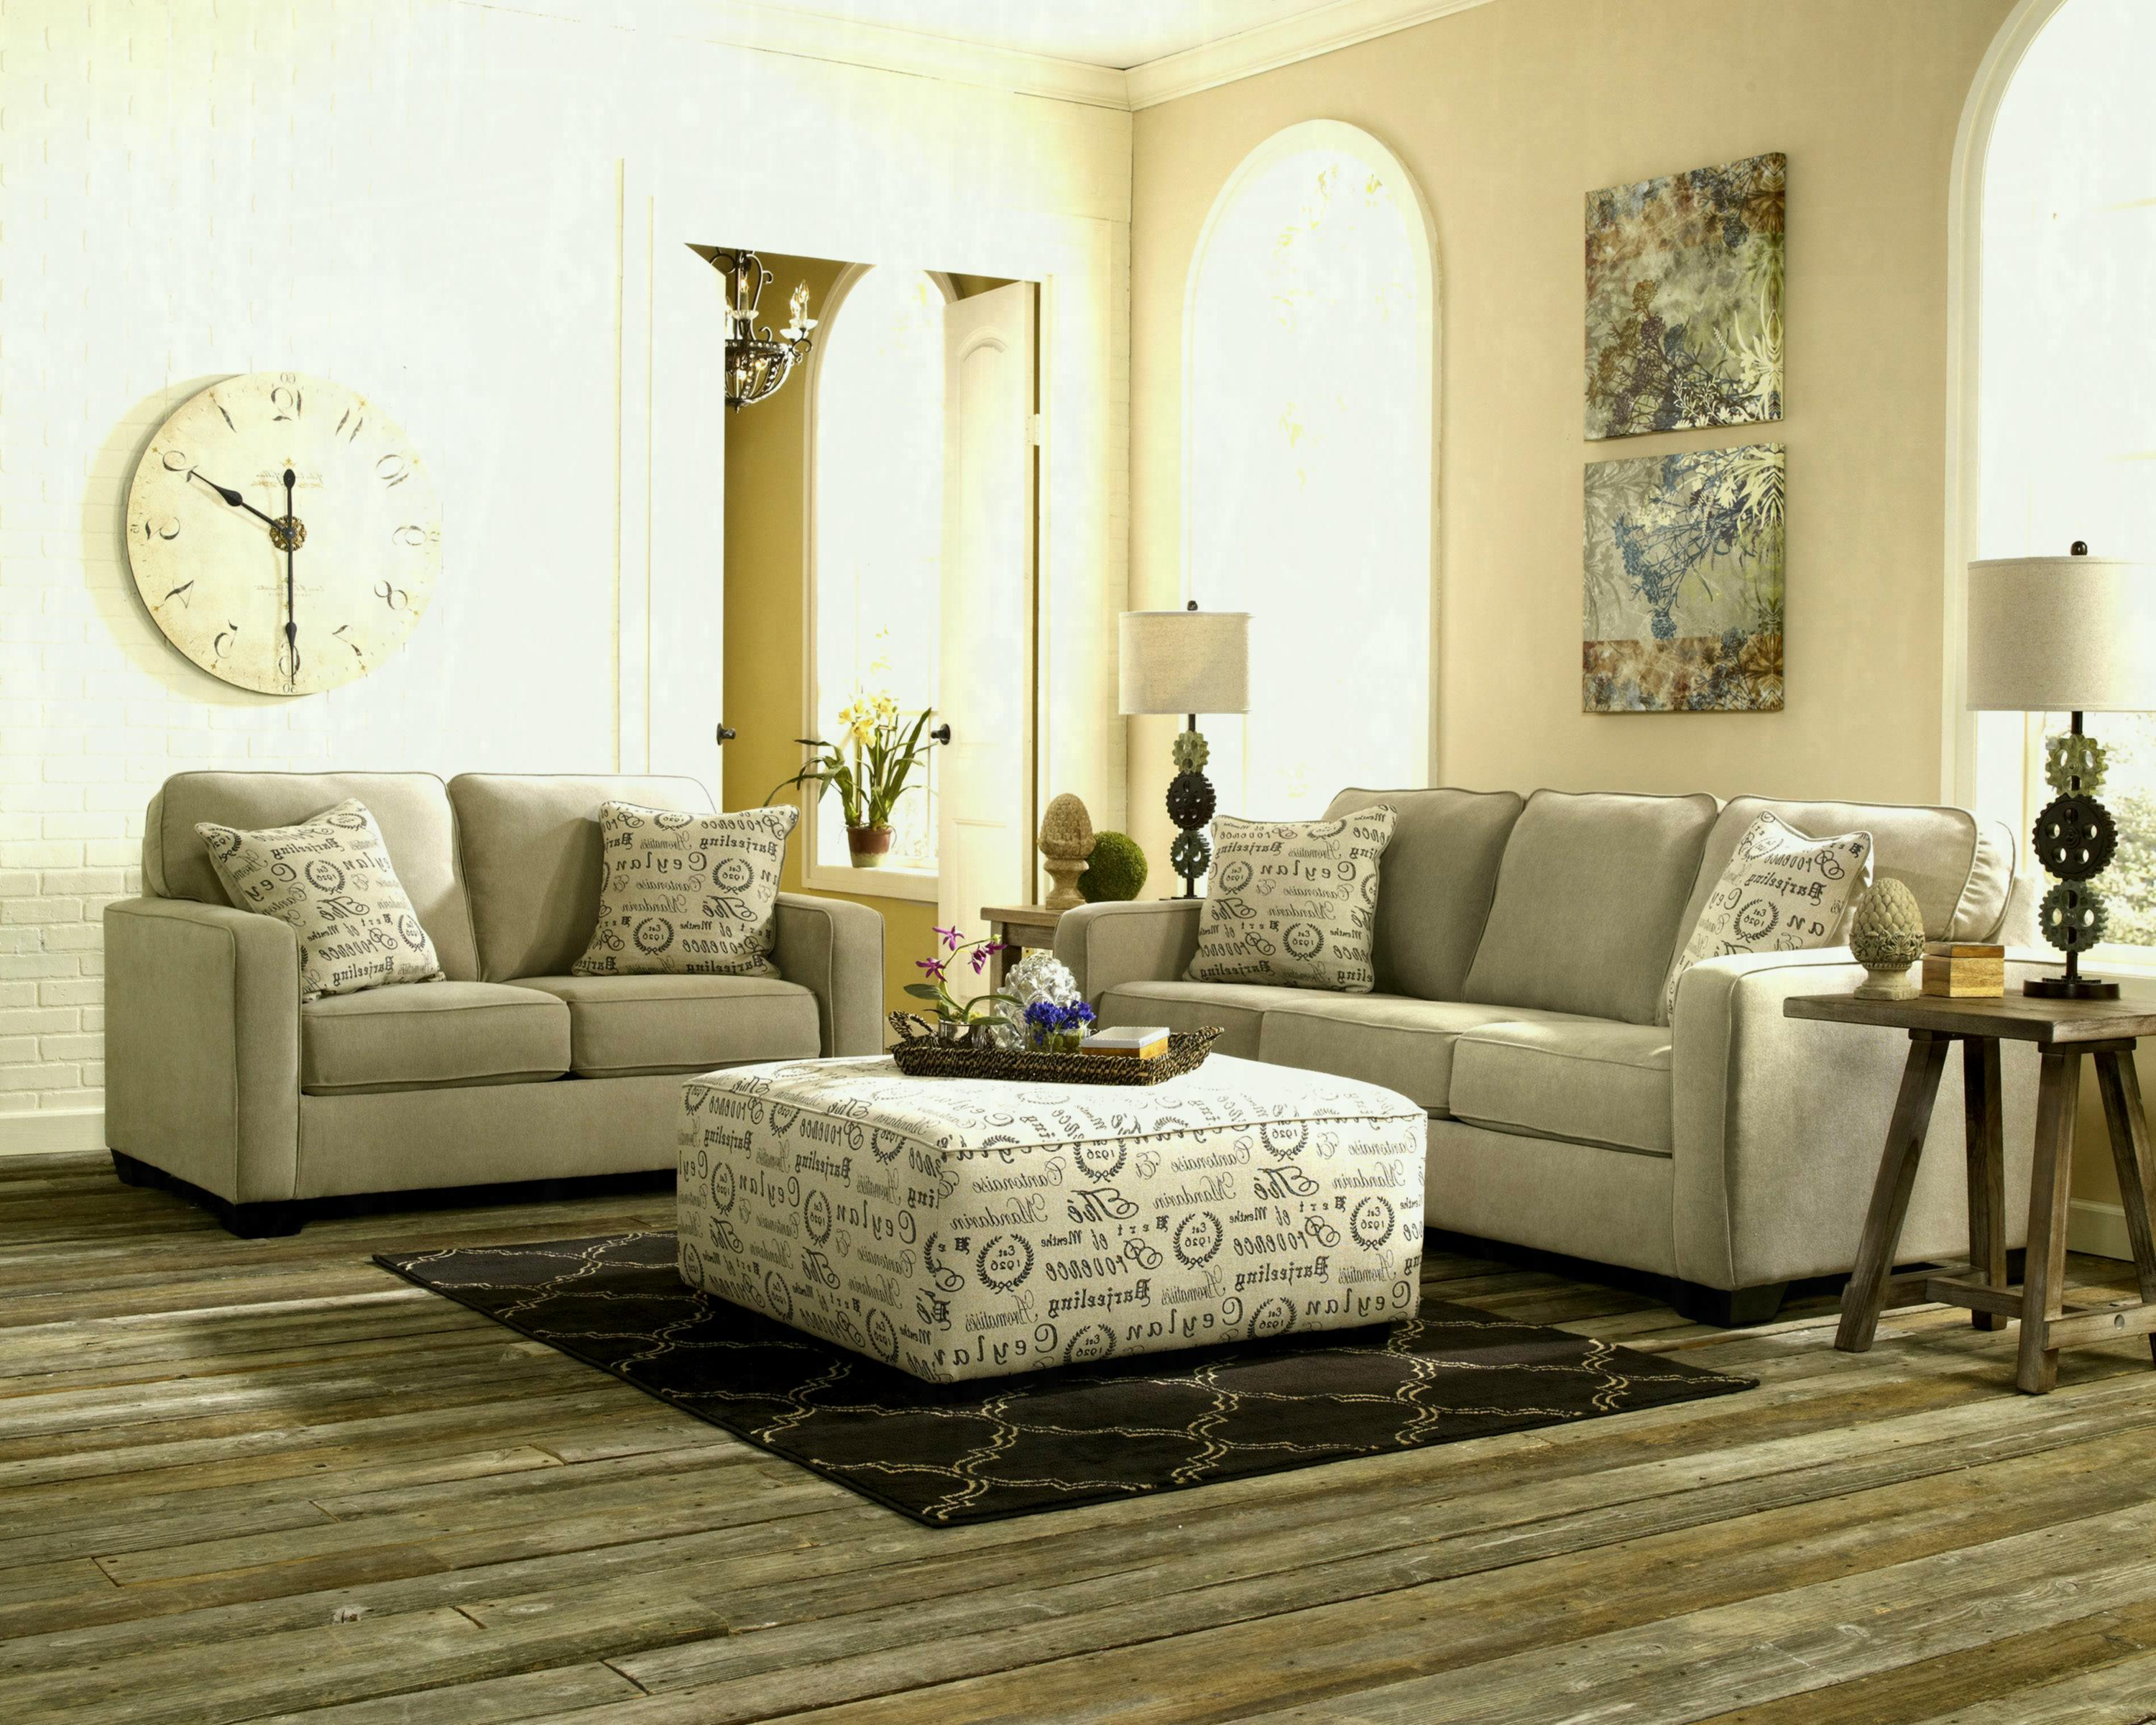 Added To Cart Aquarius Light Grey Piece Sectional W Raf Chaise In Most Recently Released Aquarius Light Grey 2 Piece Sectionals With Laf Chaise (Gallery 9 of 20)